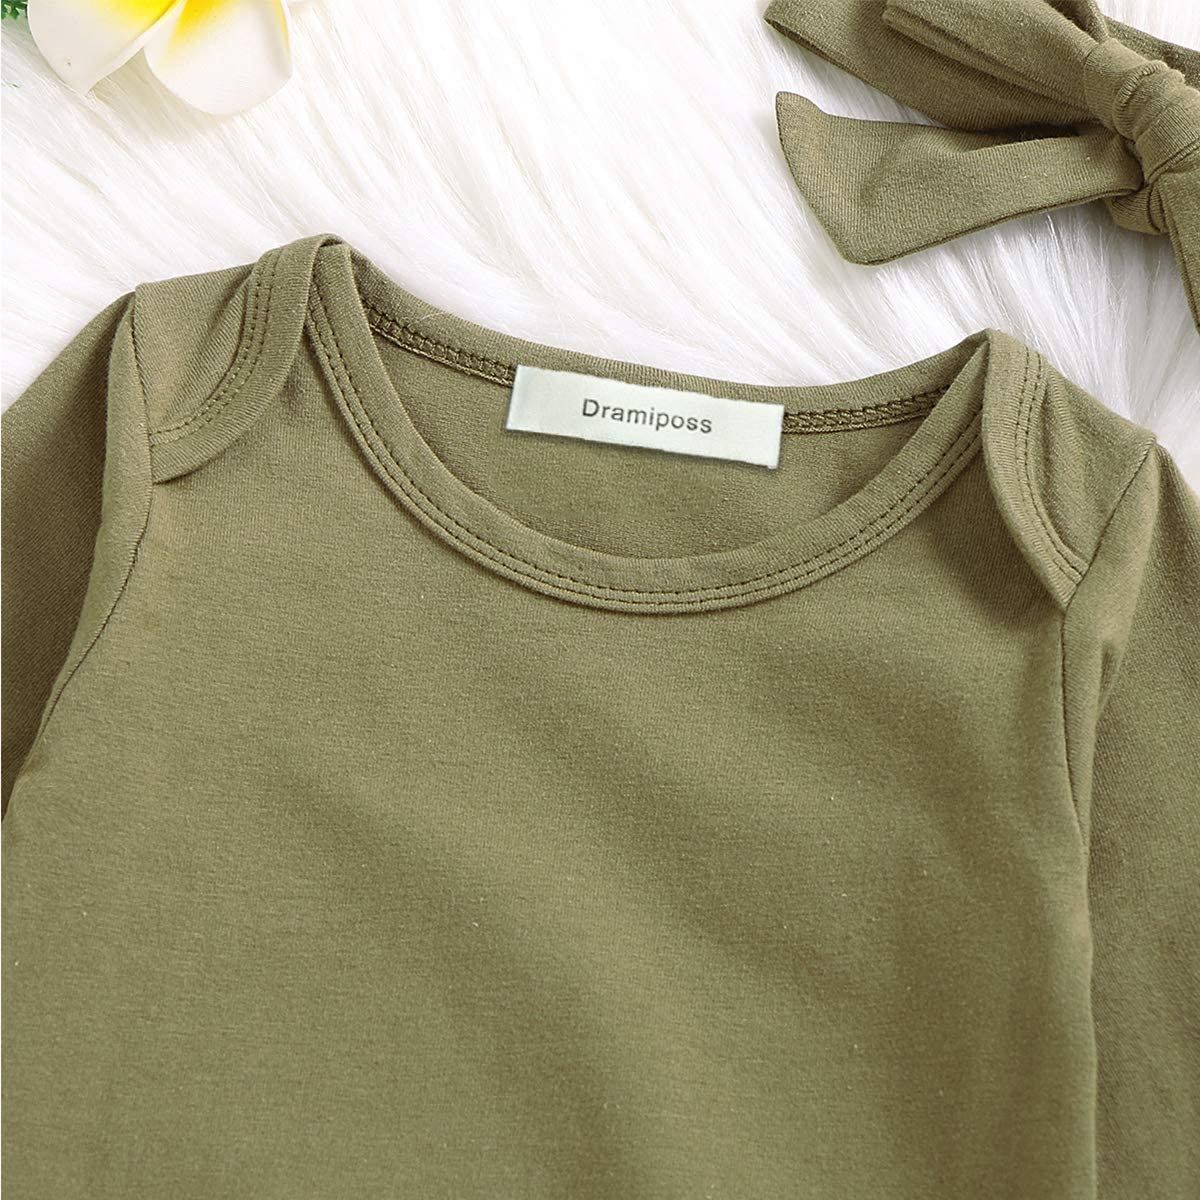 Dramiposs Newborn Boys Girls Solid Color Nightgowns Infant Long Sleeve Outfit Funny Sleeper (Olive, 0-3 Months): Clothing